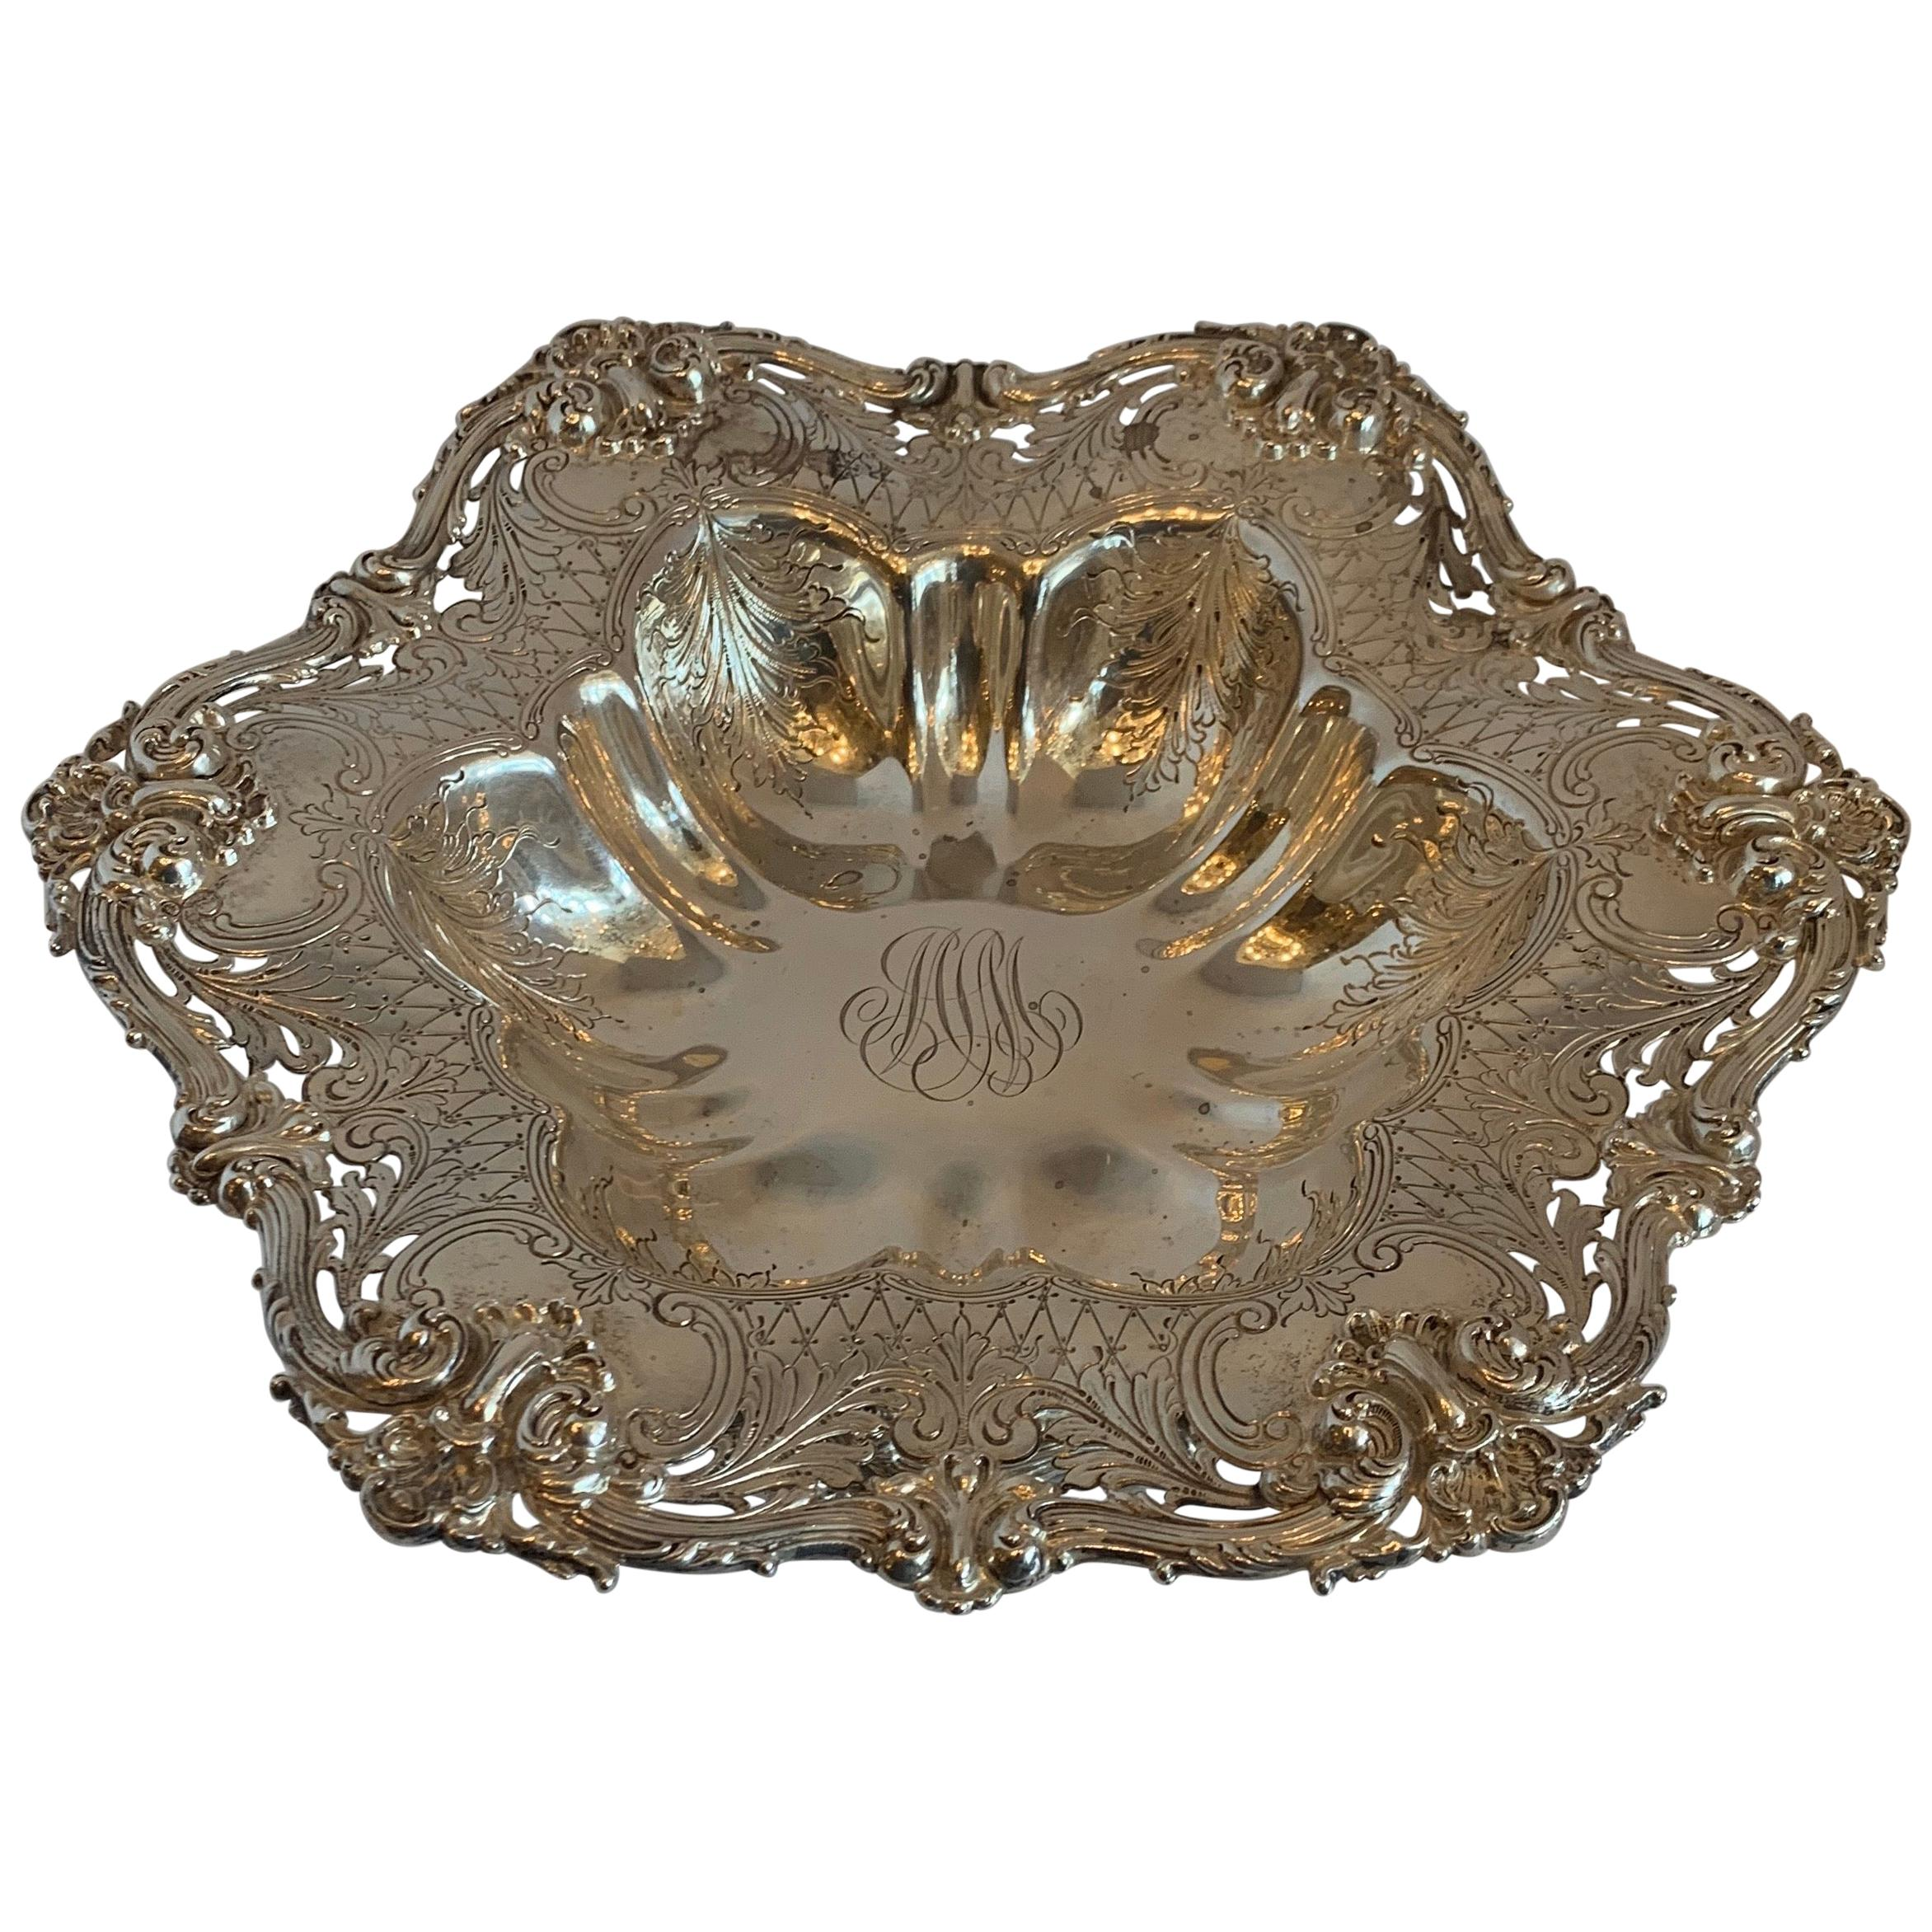 Wonderful Sterling Silver Whiting Pierced Reposse Hand Chased Centerpiece Bowl